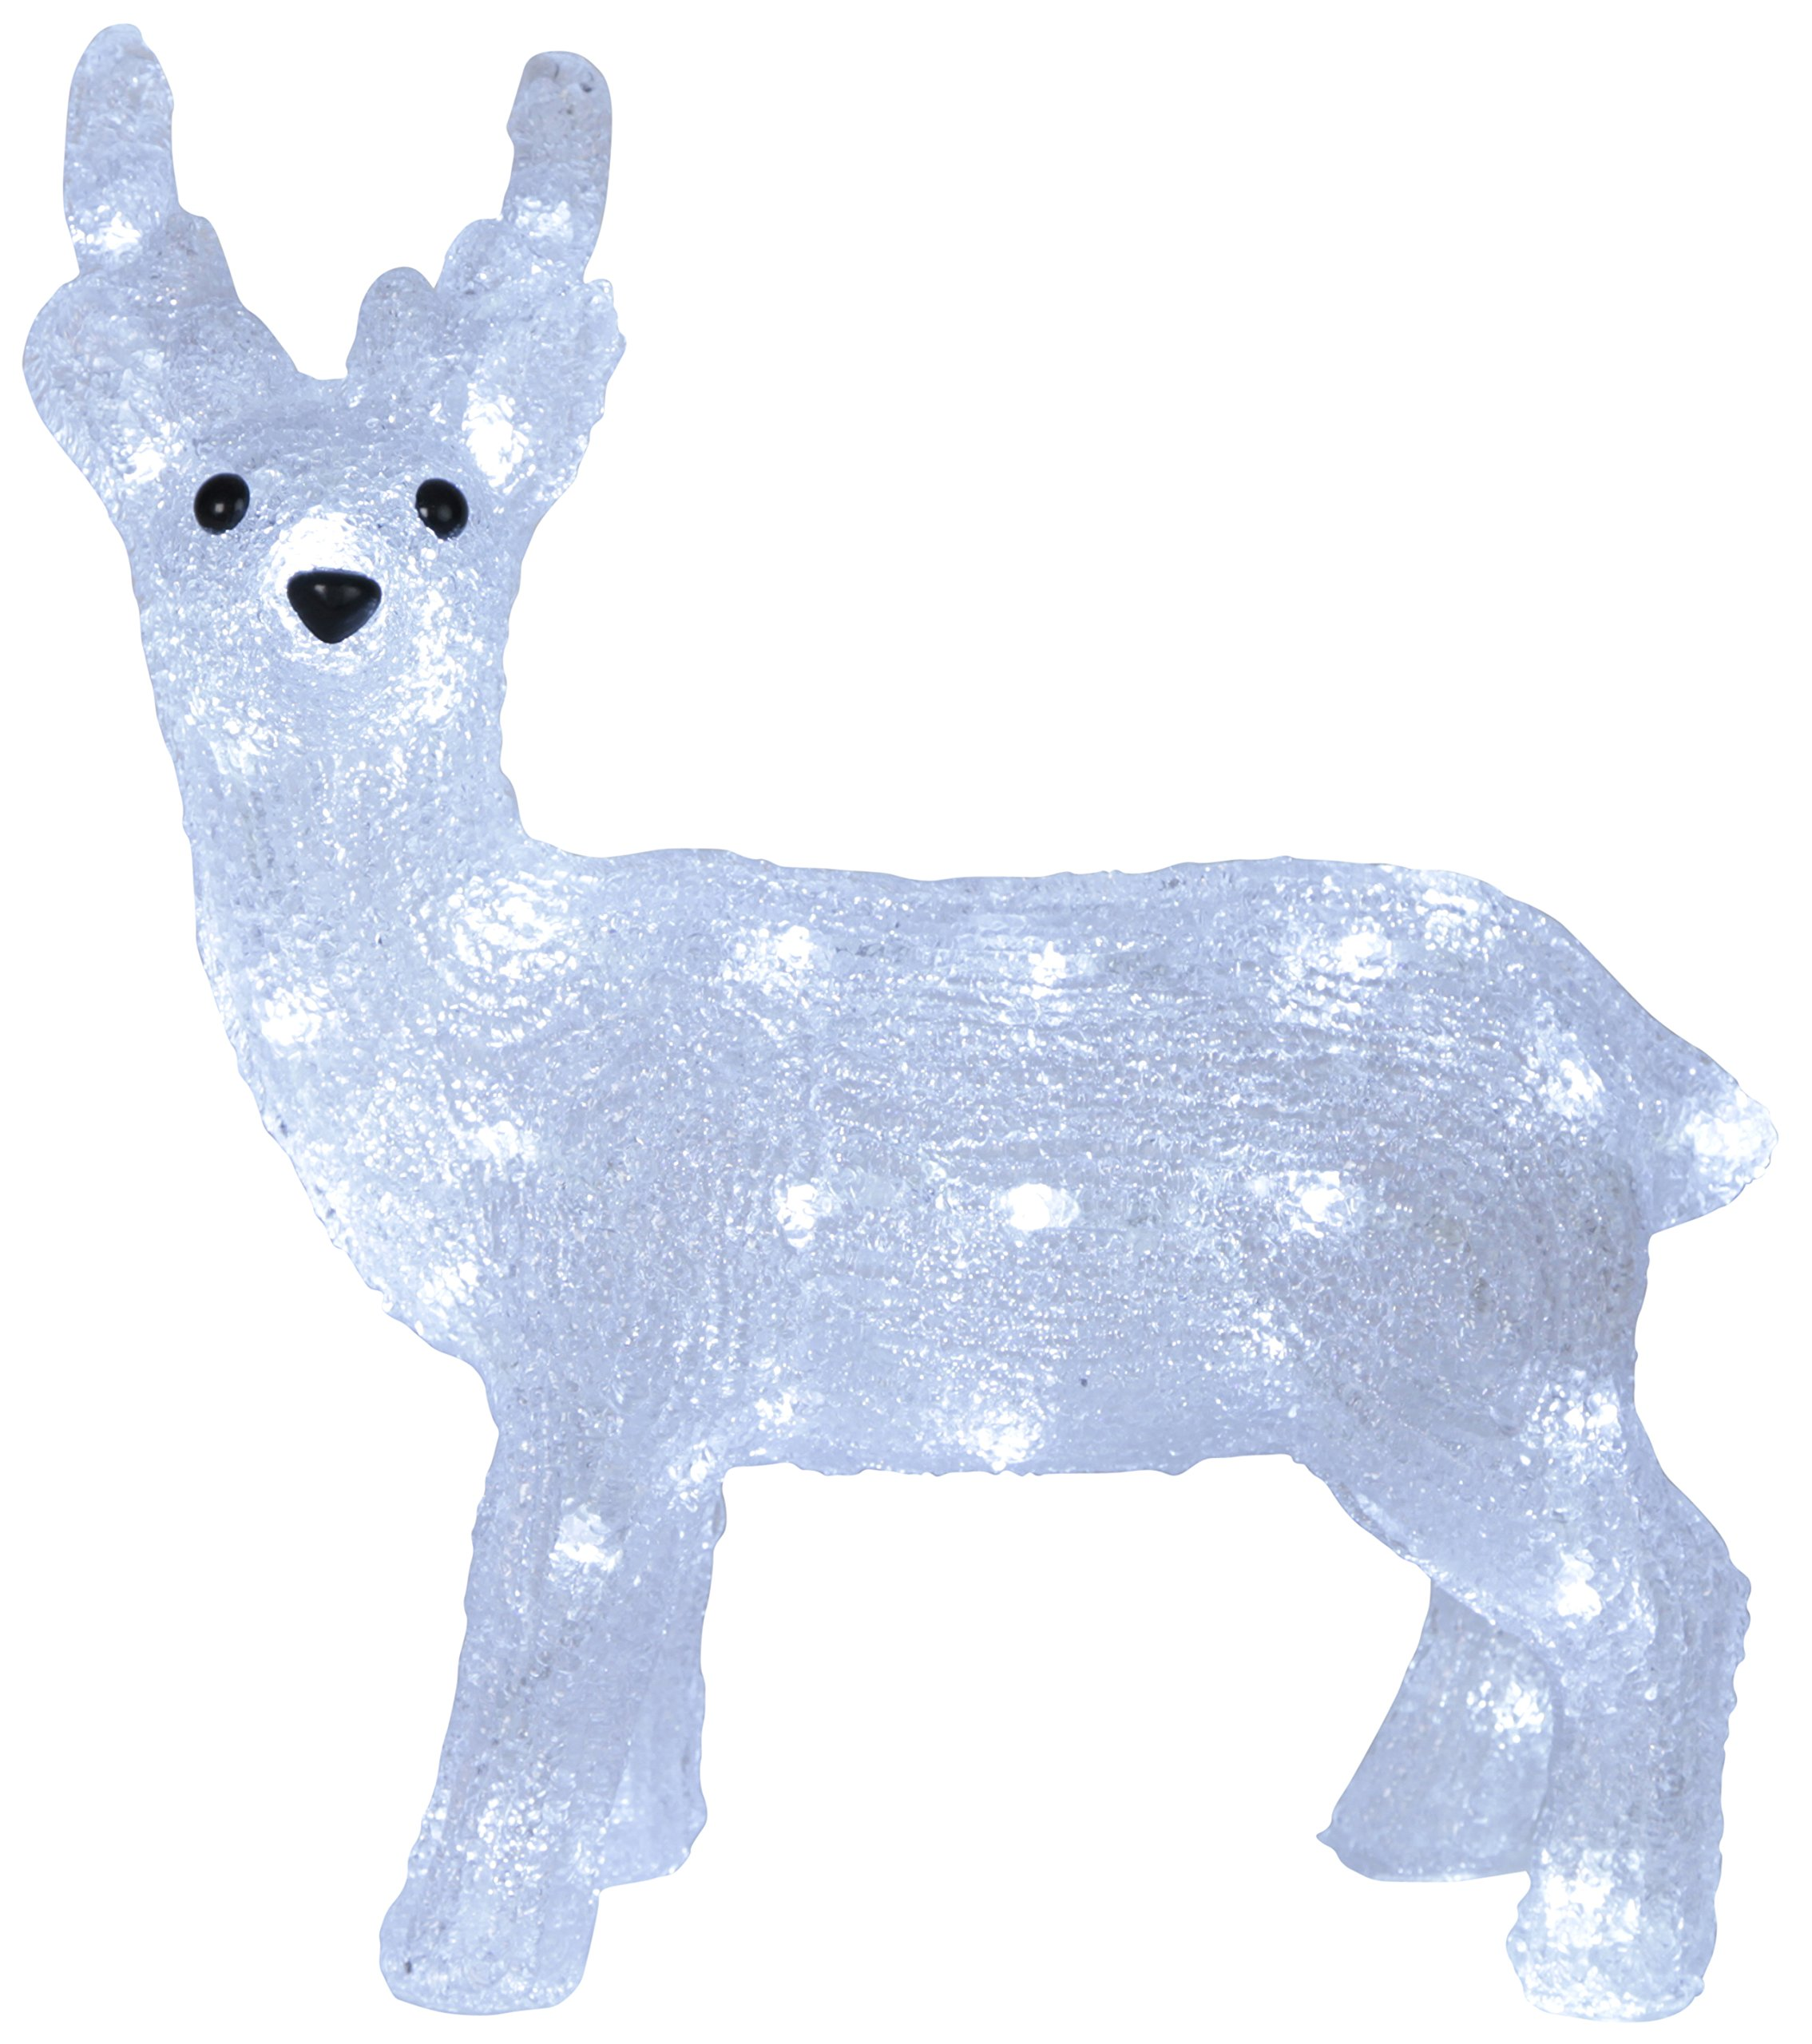 LED-Acrylrentier-Crystal-Deer-40-cool-light-LED-stehend-ca-35-x-33-cm-outdoor-mit-Trafo